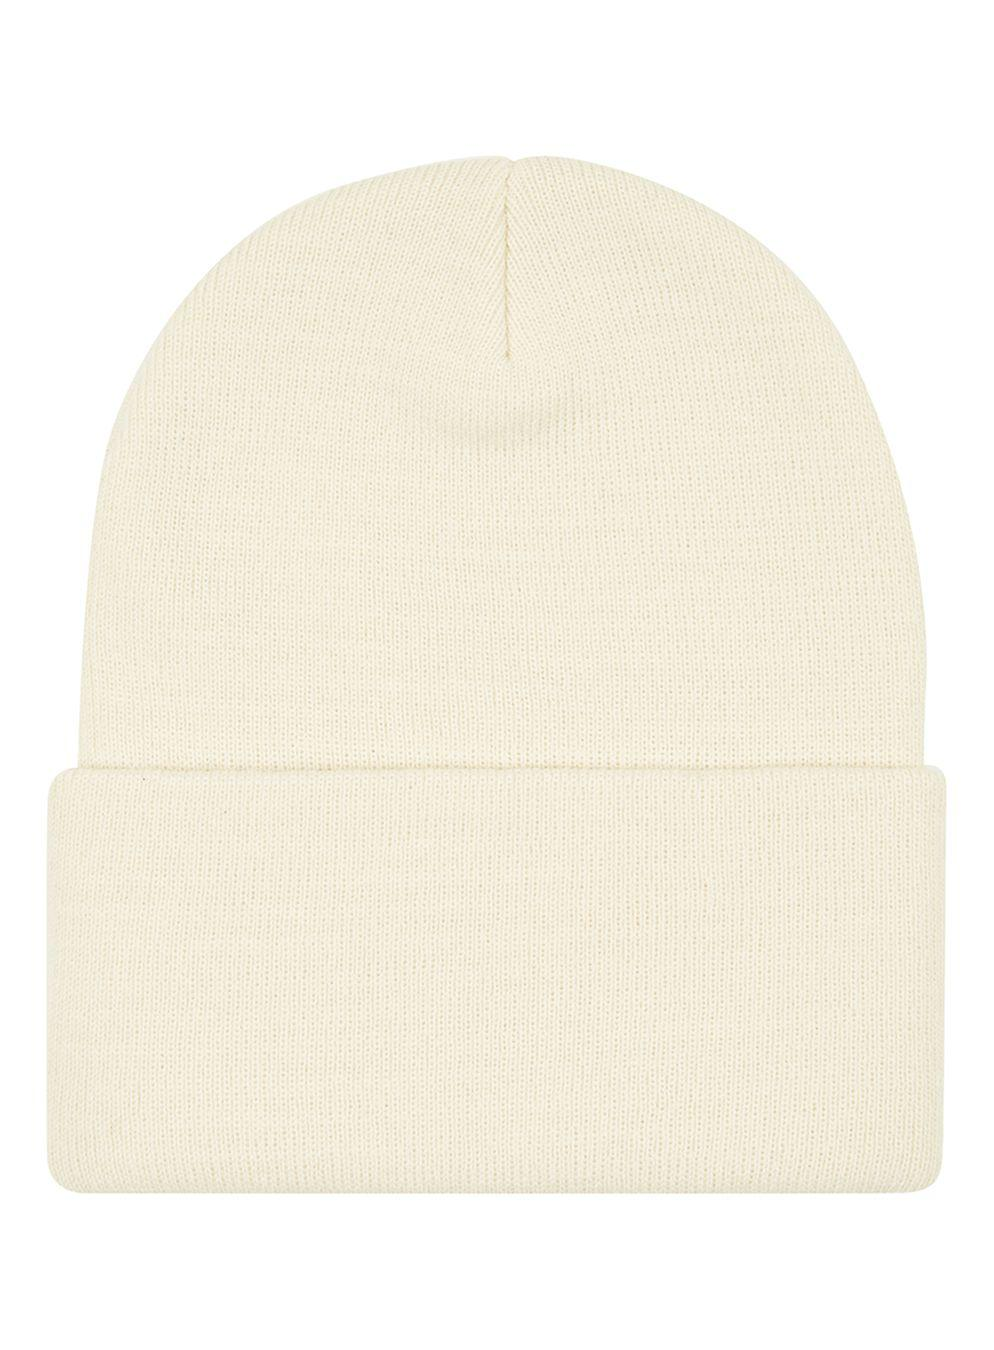 Topman White Snowdrop Skater Beanie in White for Men - Lyst cf73b2e28985